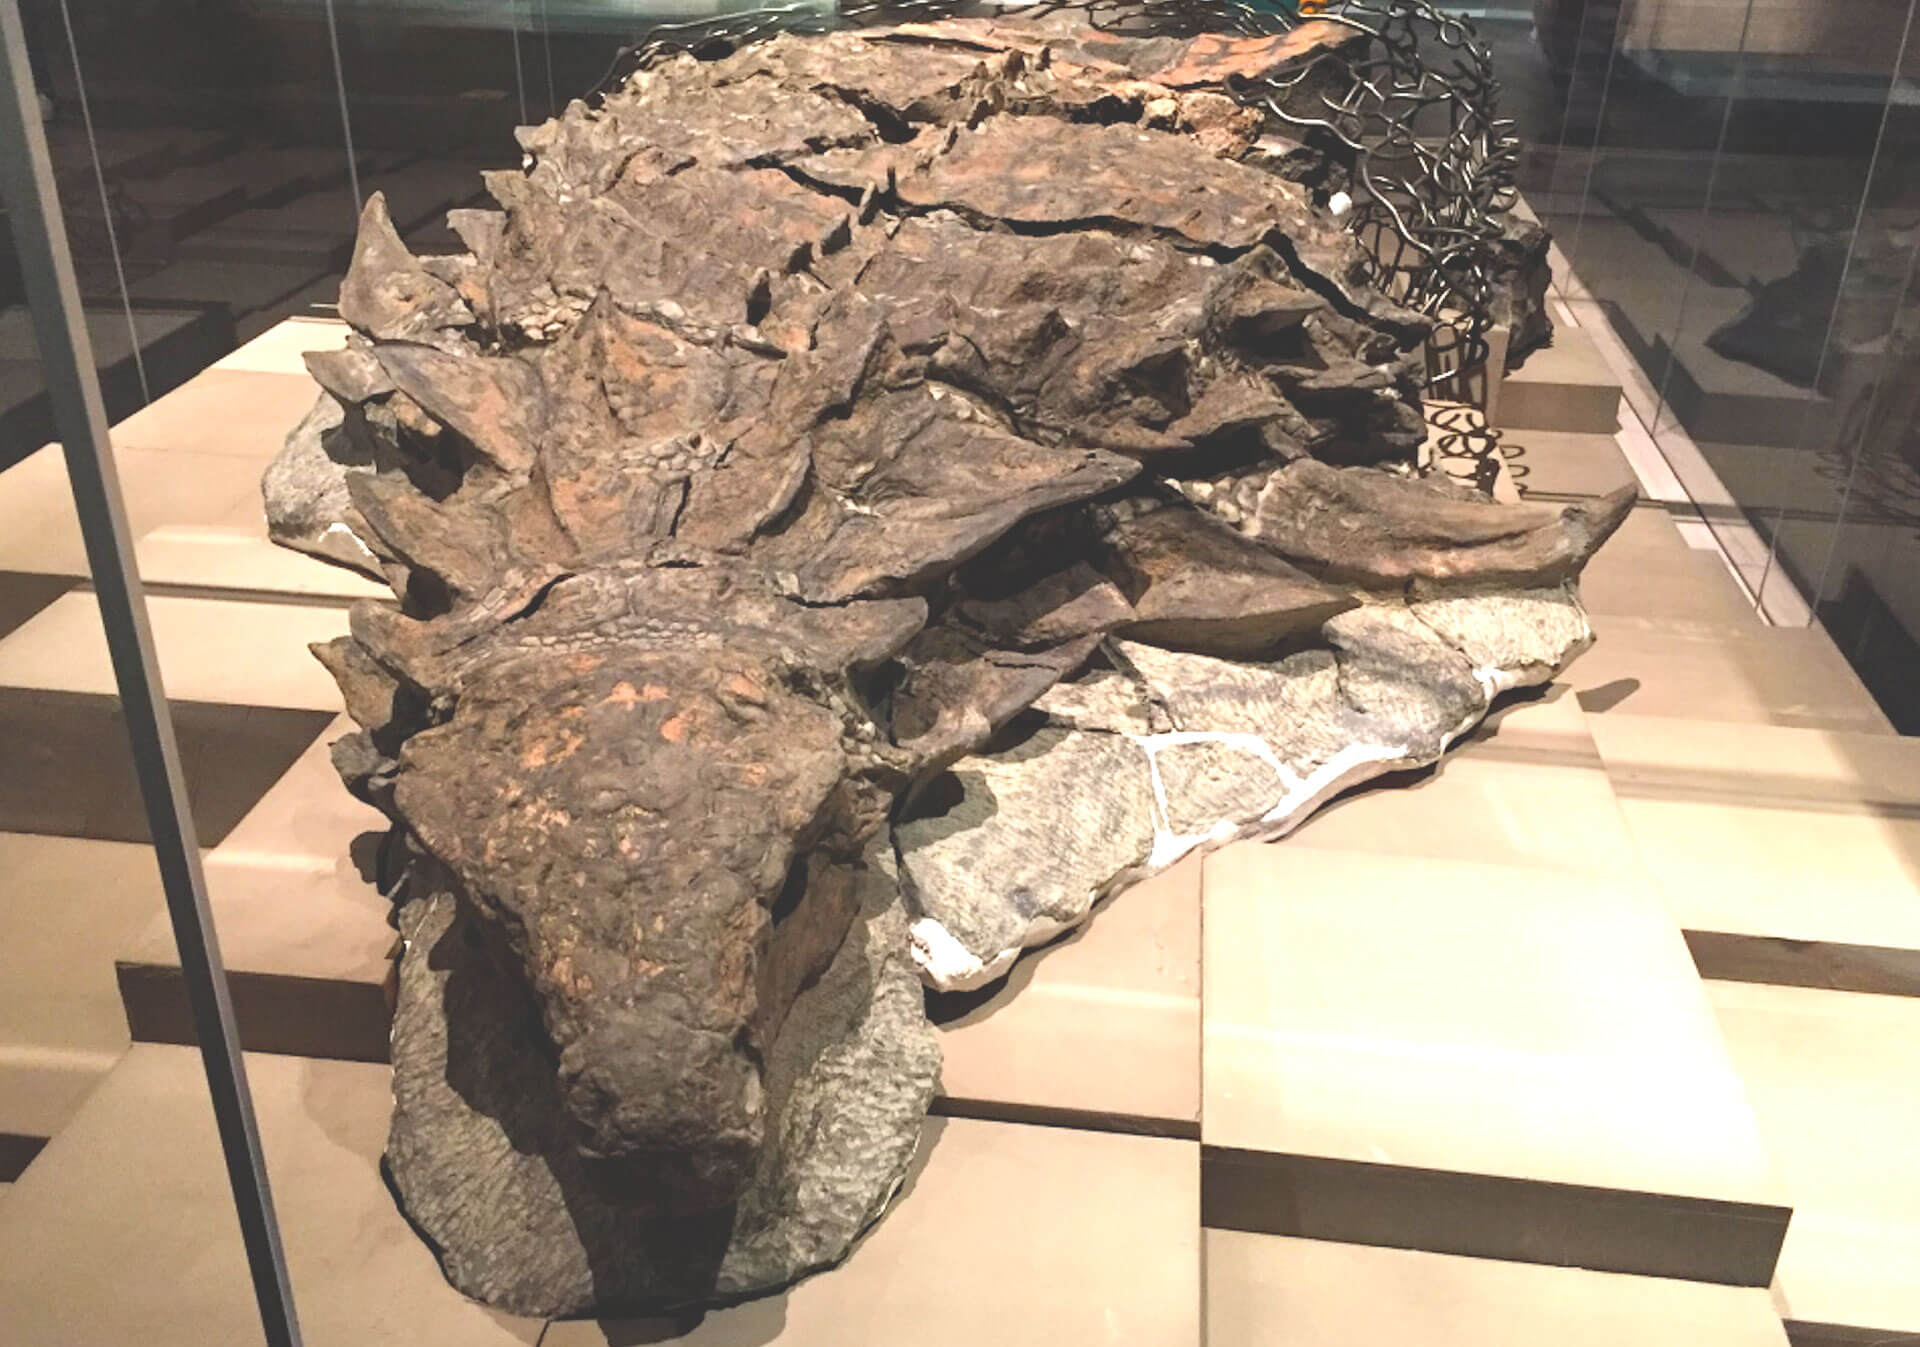 Royal Tyrell Museum Fossil